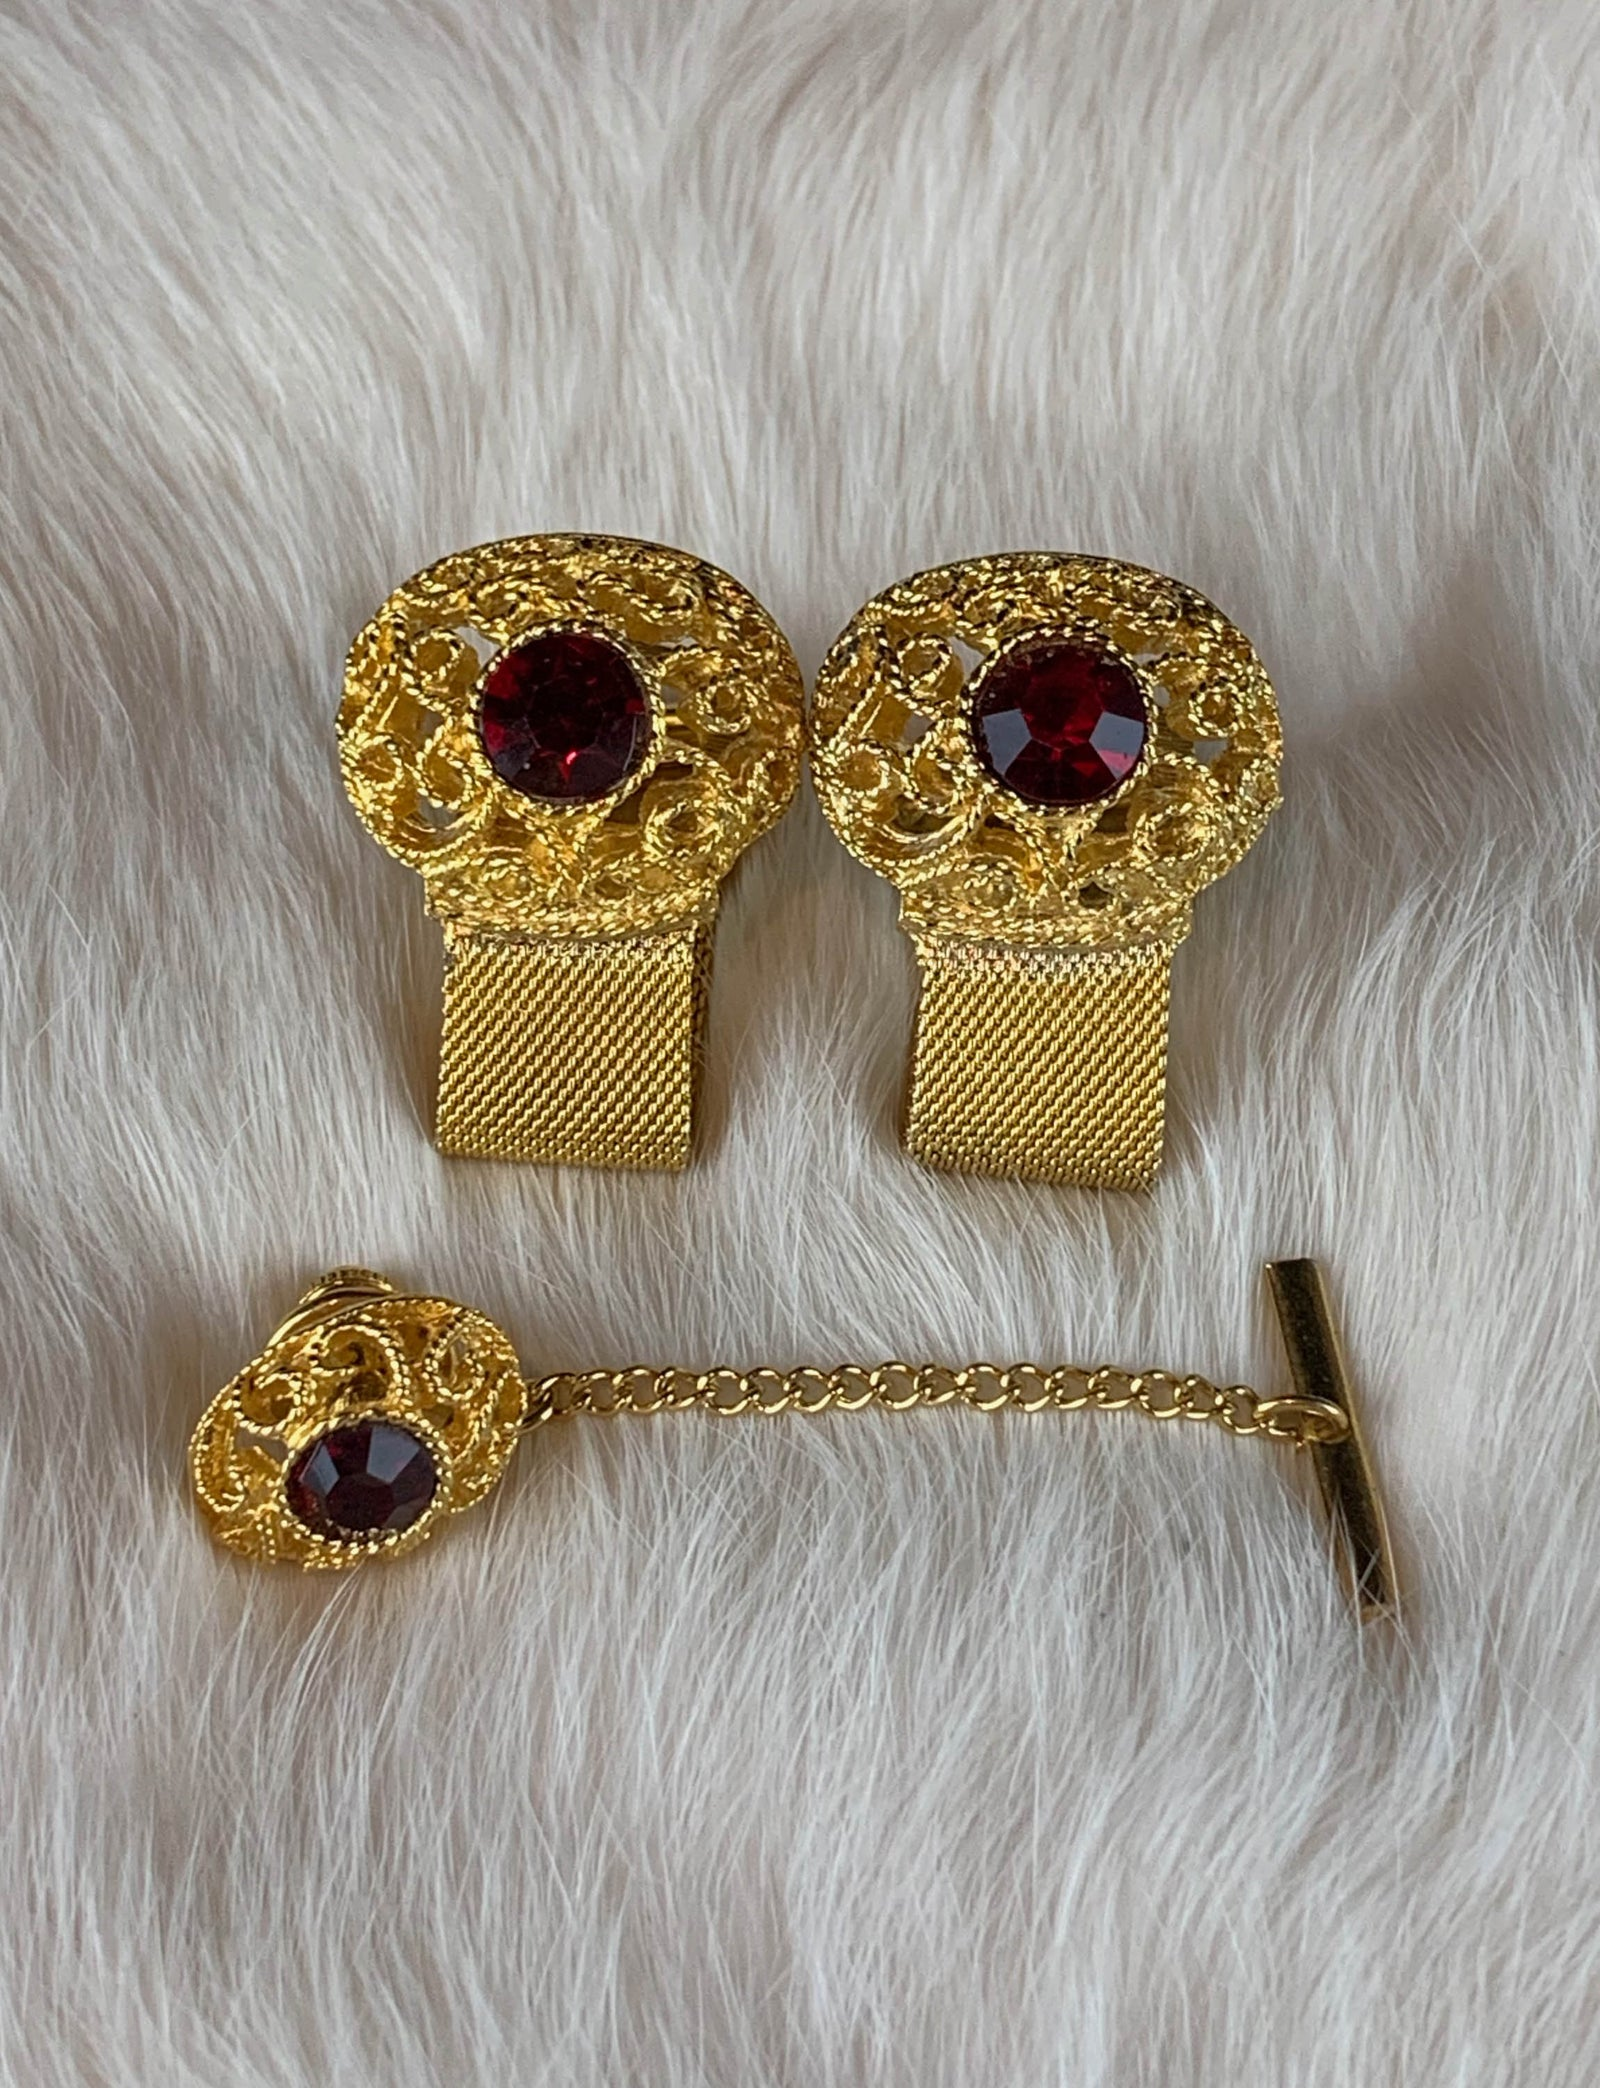 Vintage Gold Jeweled Cuff Link Set